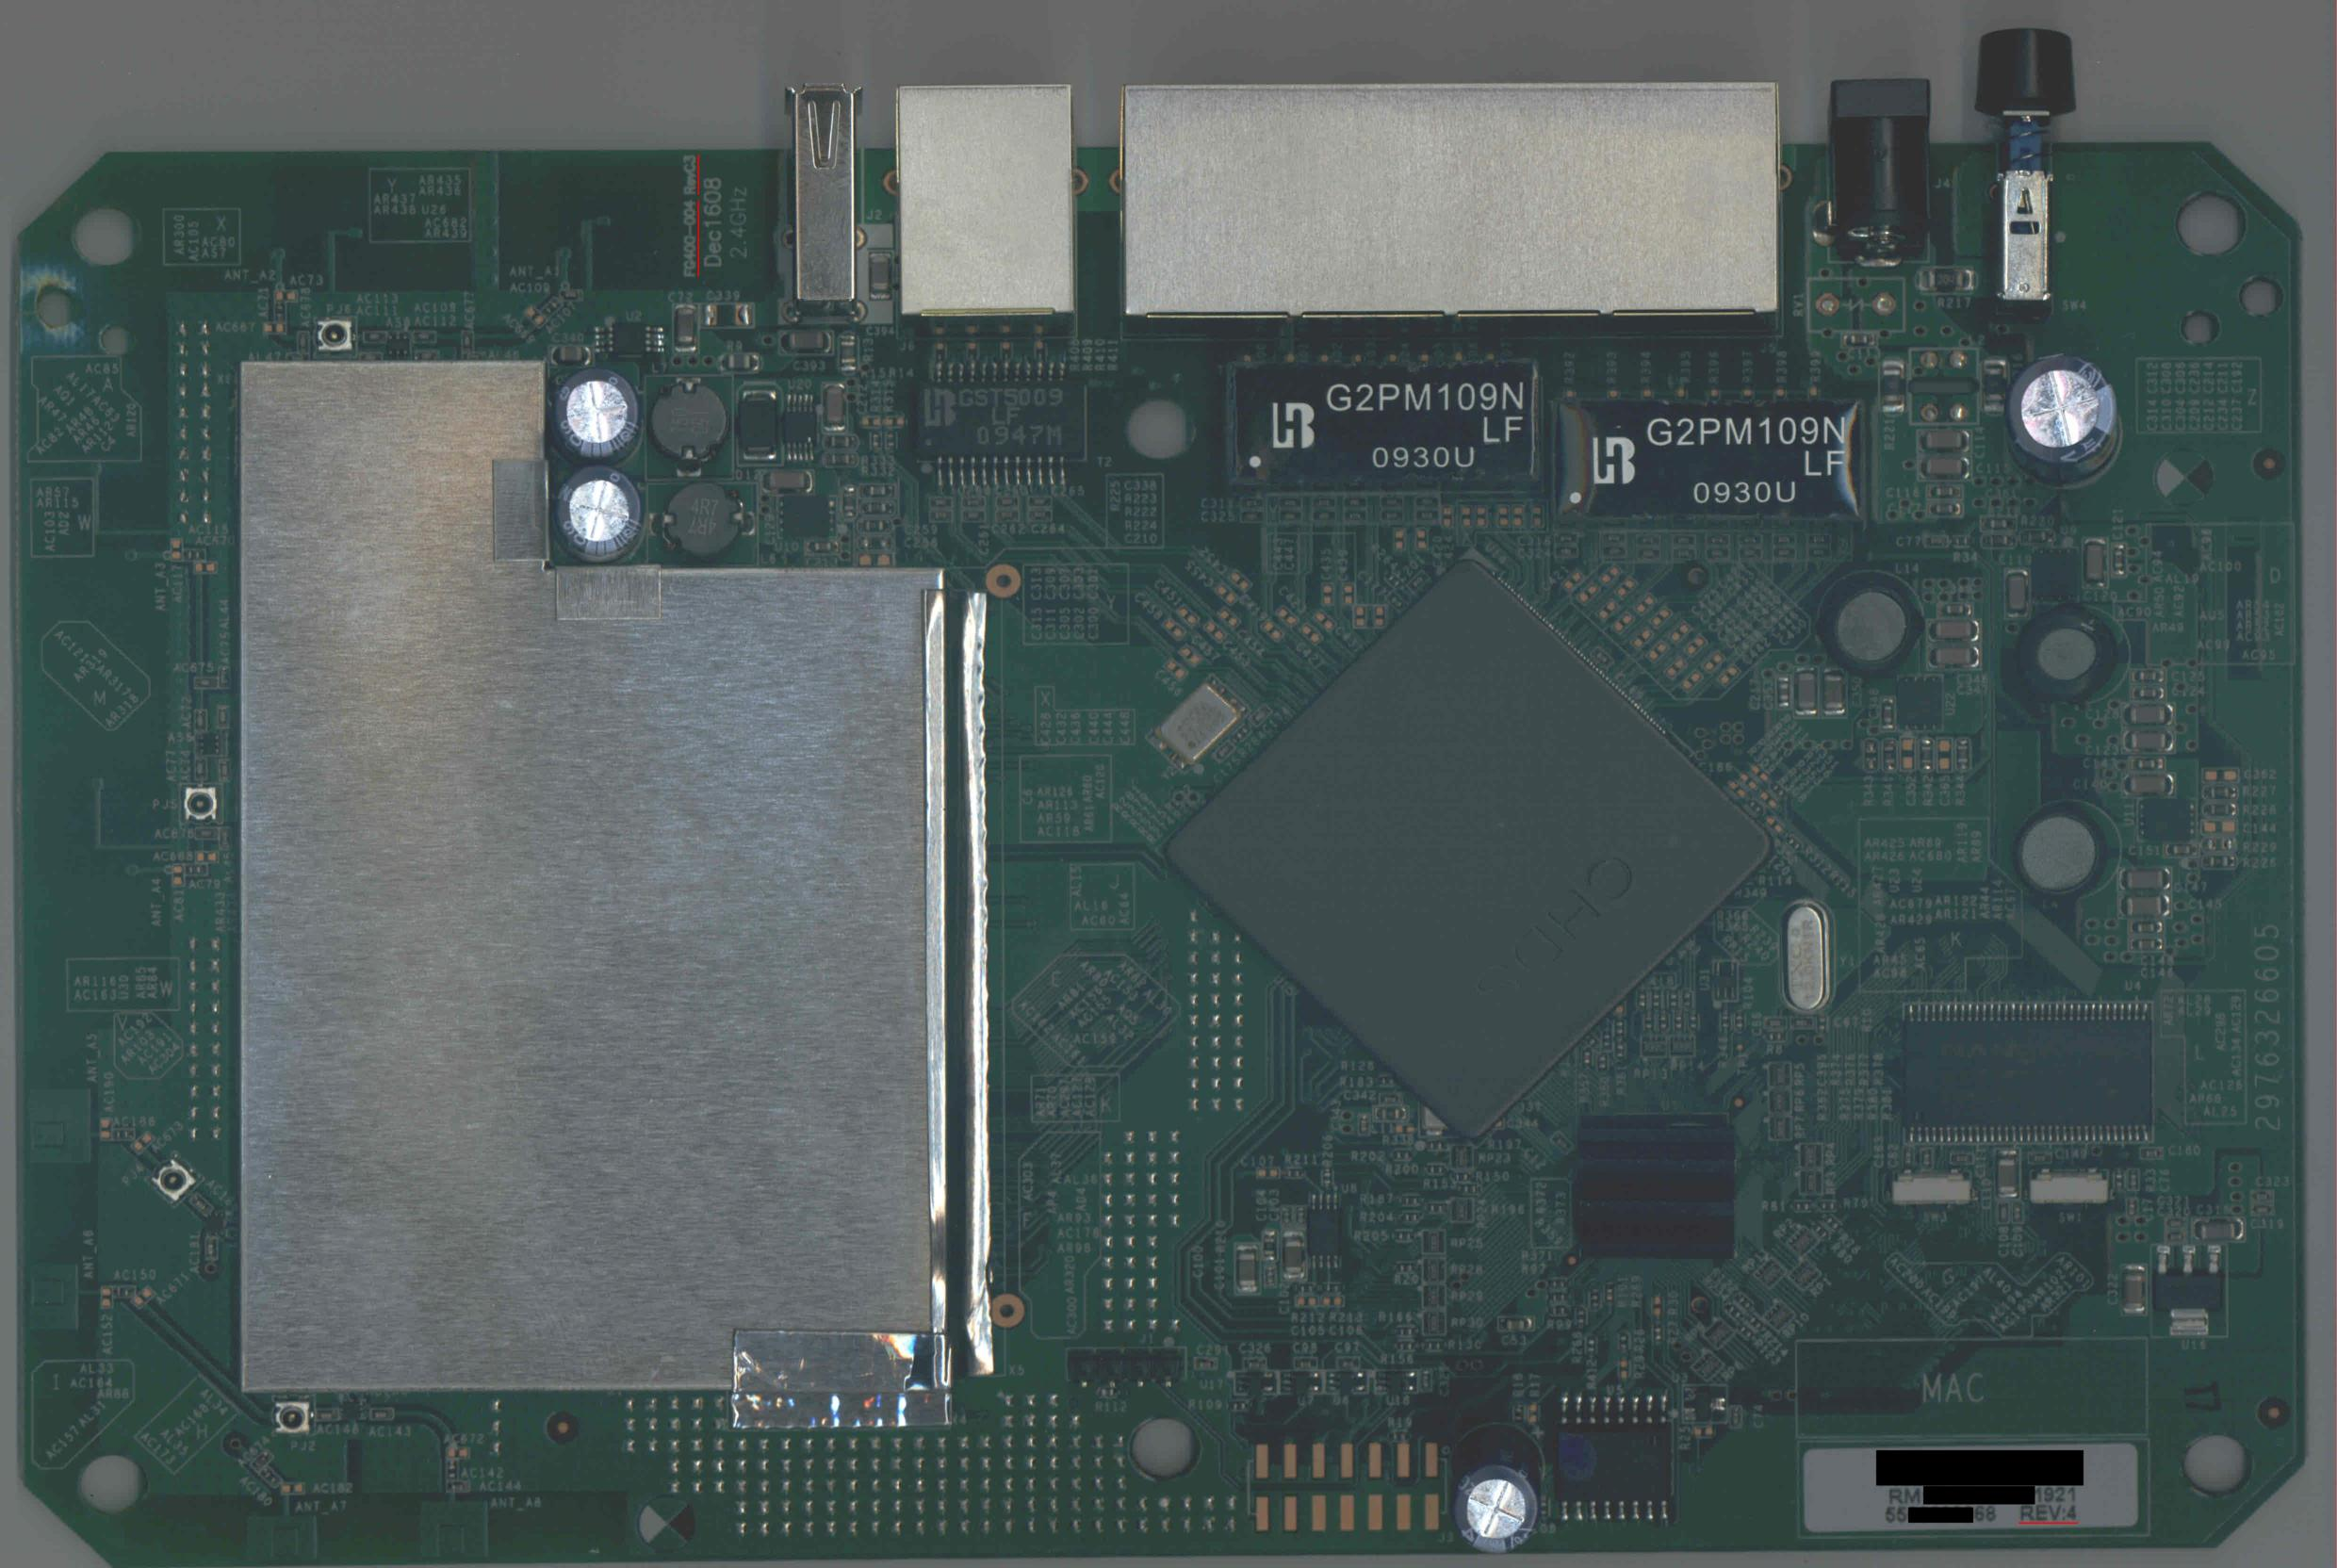 Netgear WNDR3700 PCB top side